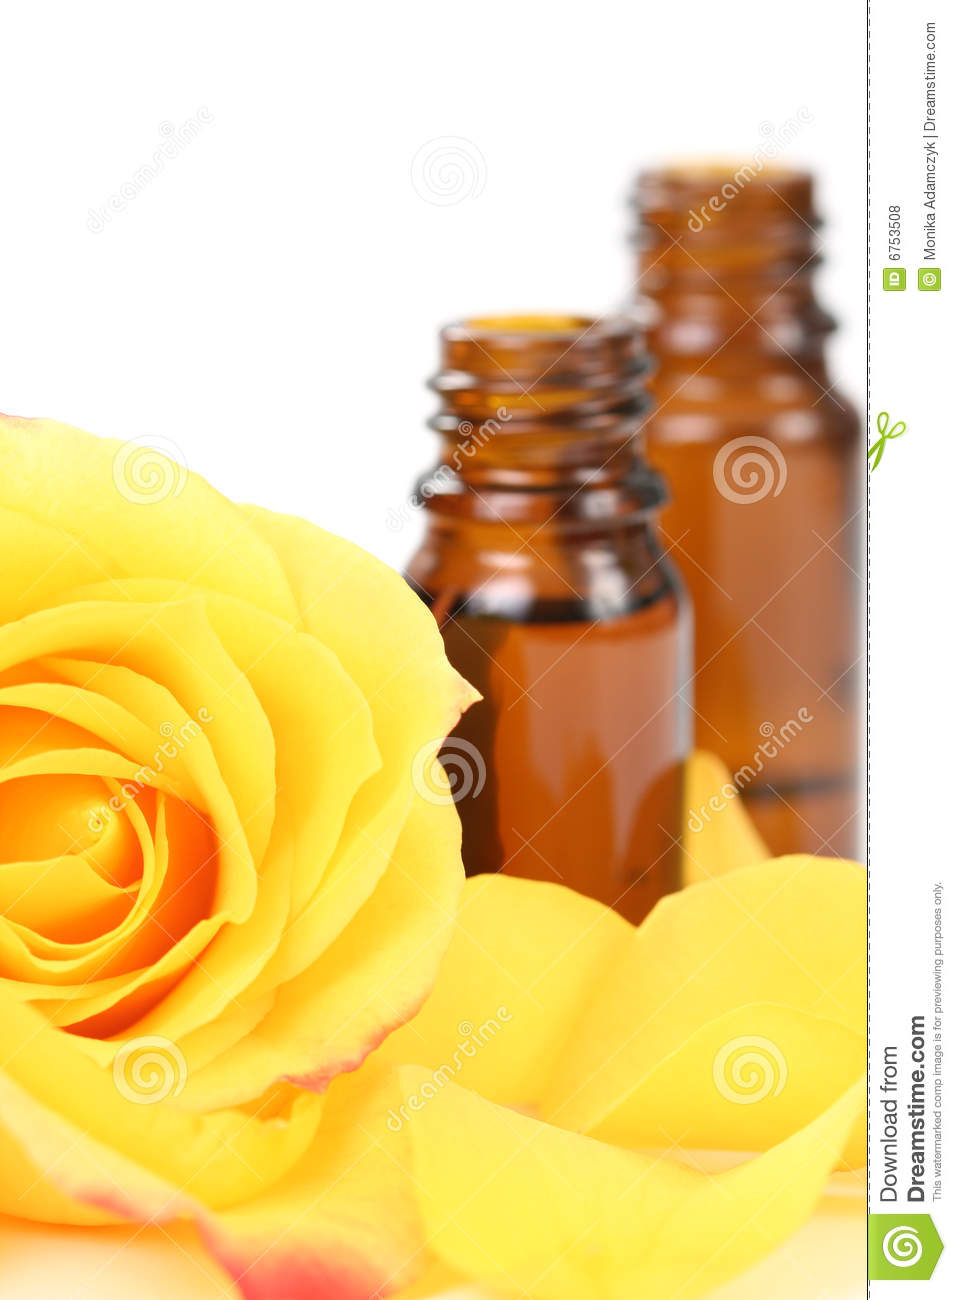 Essential oil royalty free stock photos image 6753508 - Rose essential oil business ...